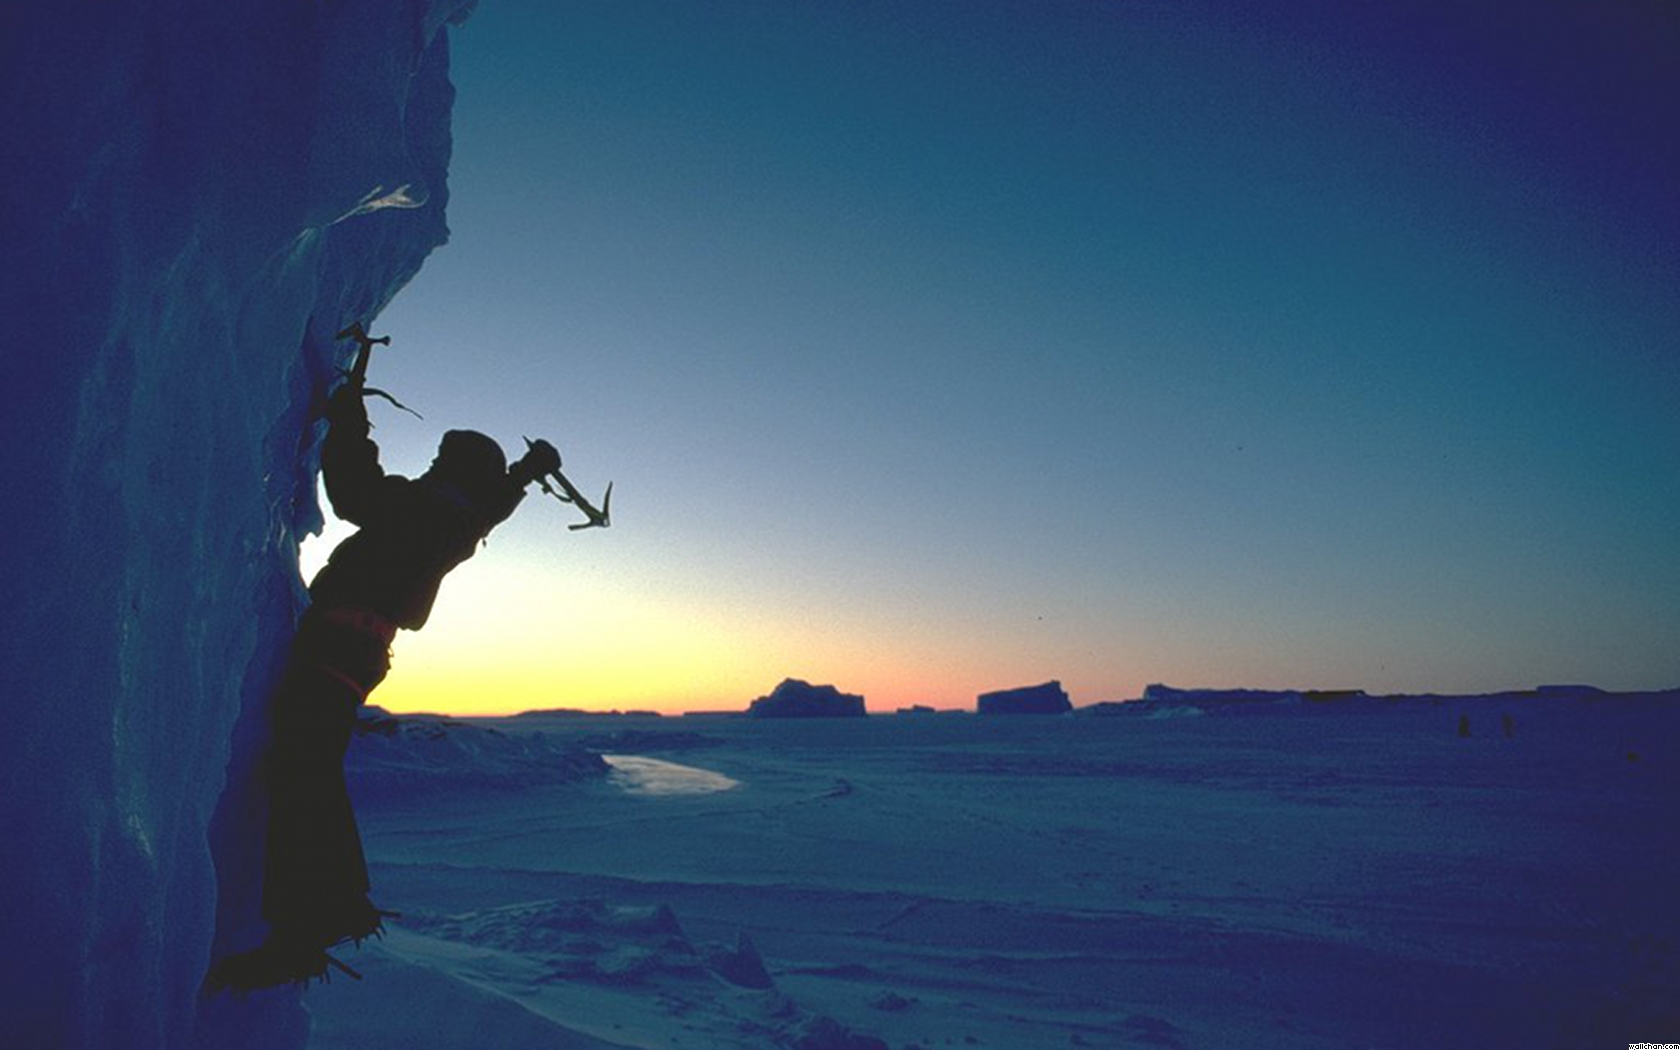 ice climbing wallpaper - photo #19